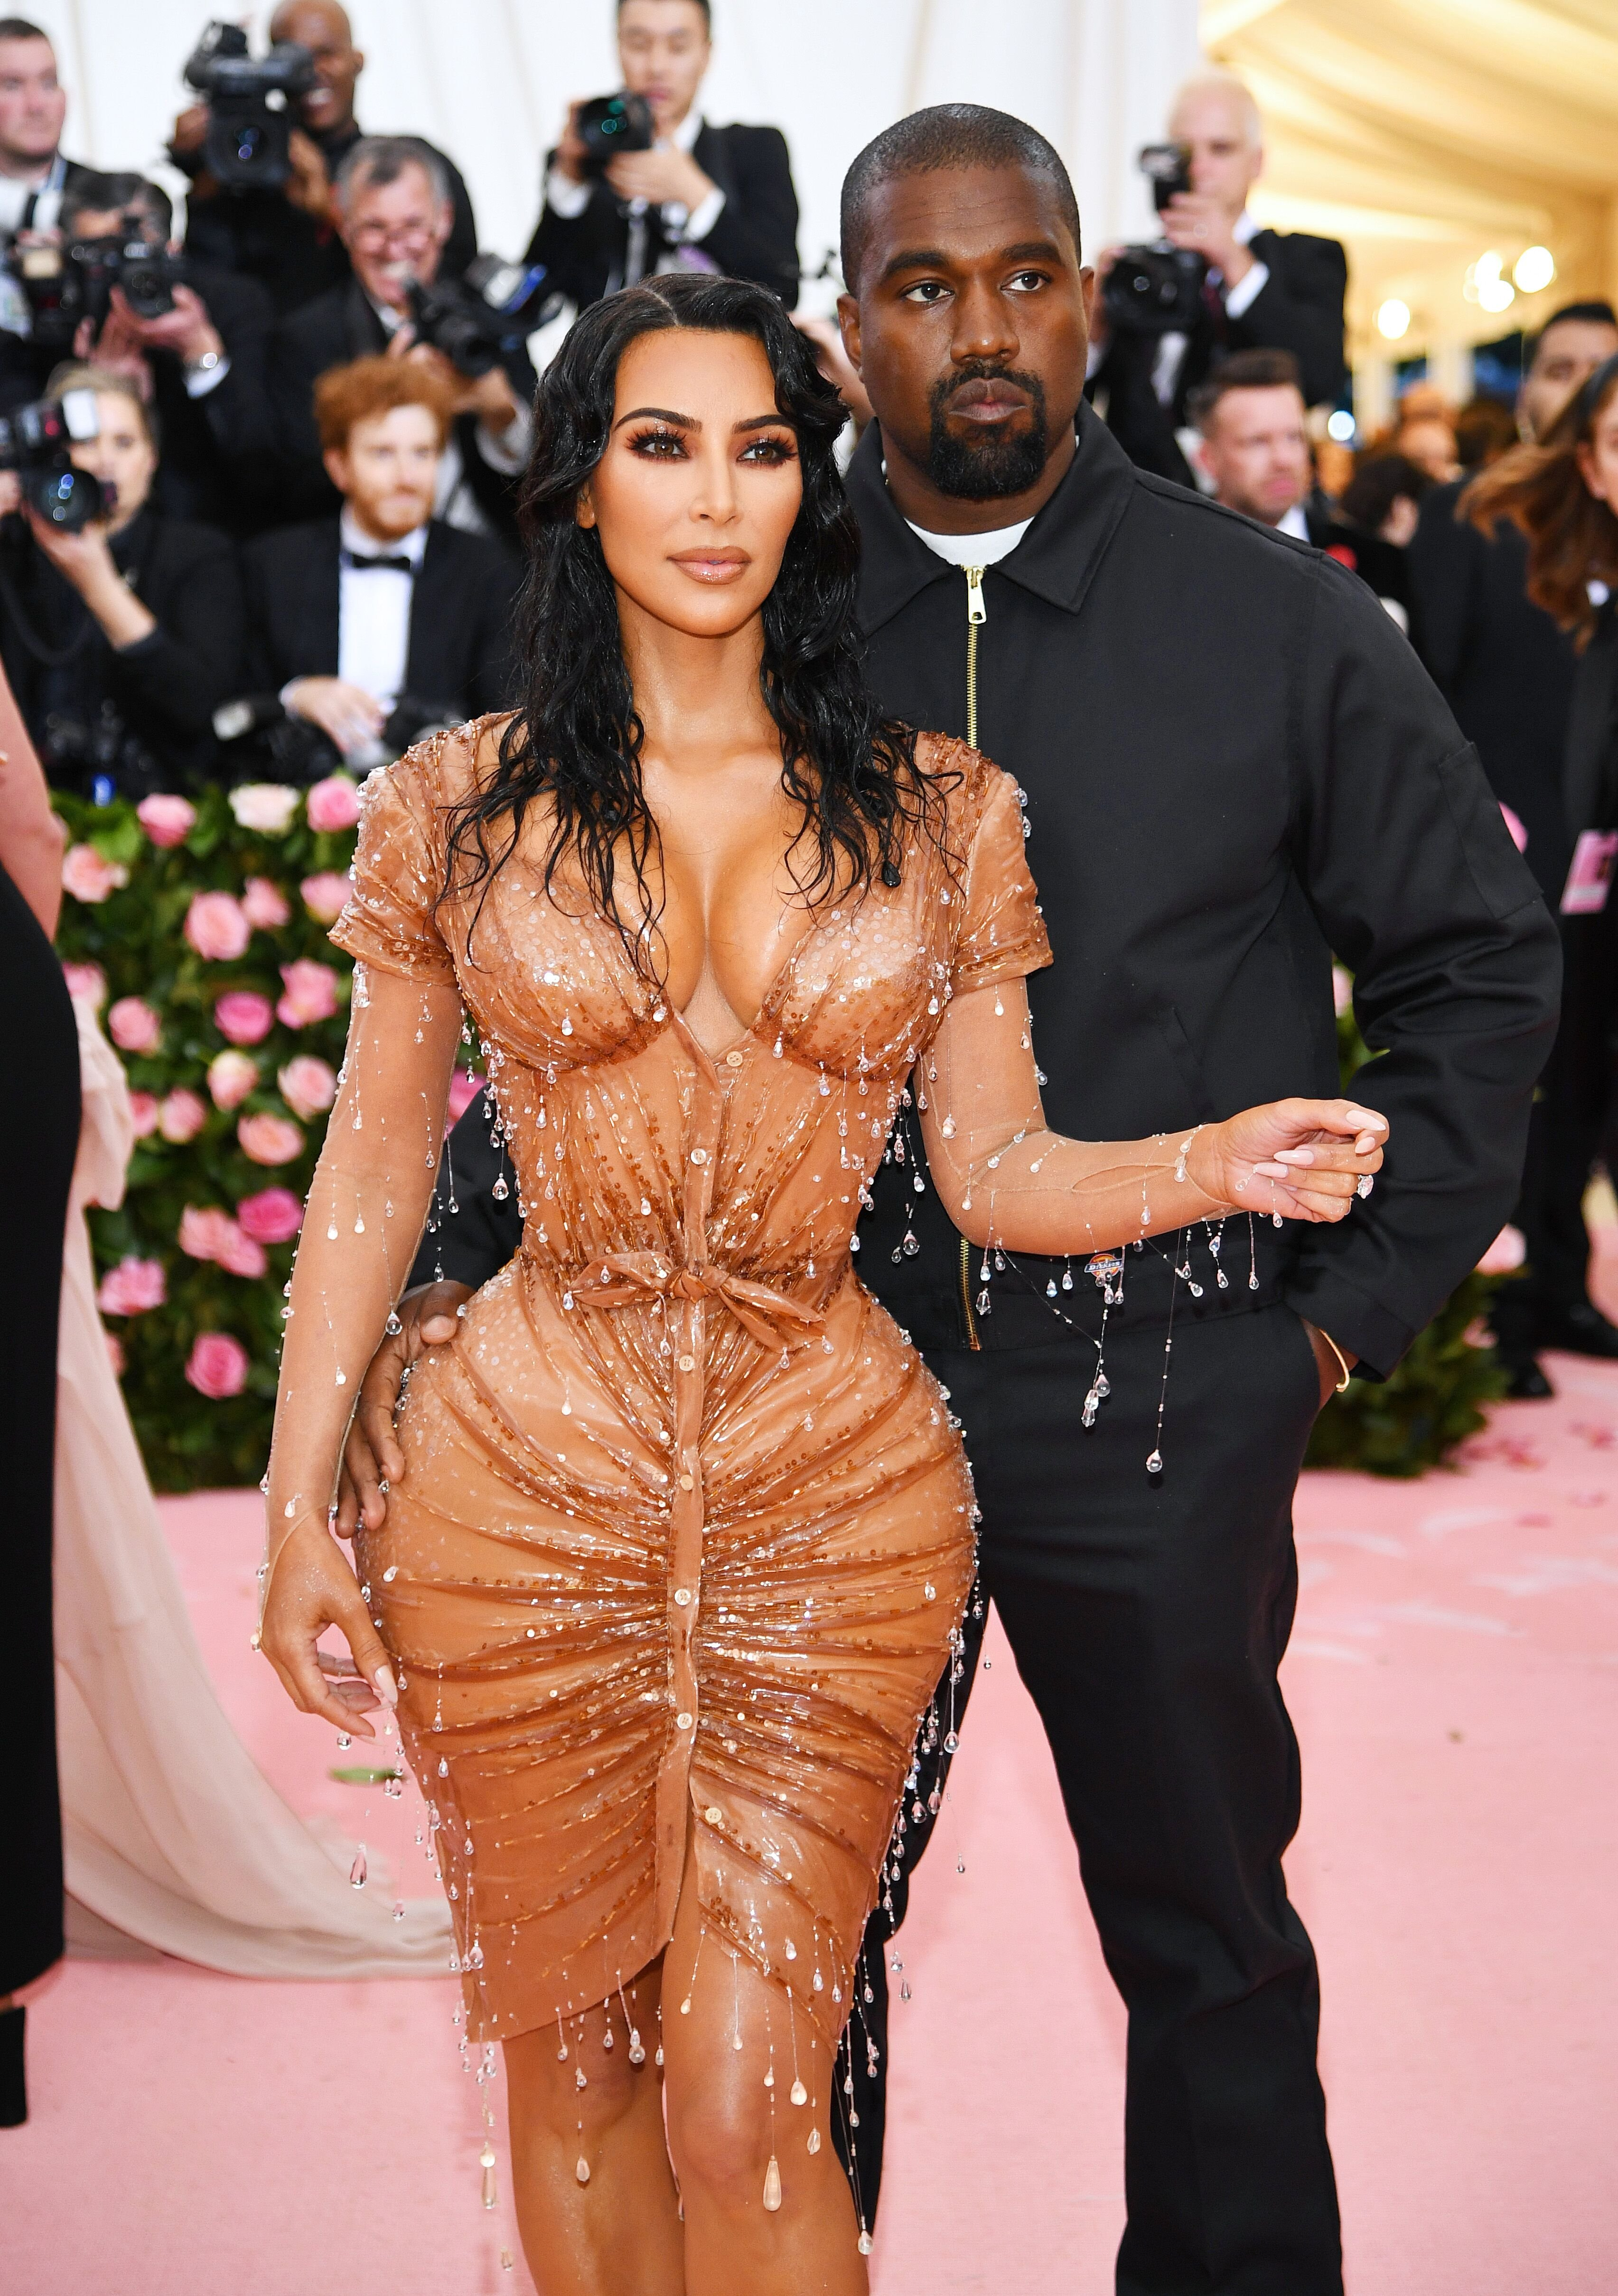 Kim Kardashian West et Kanye West assistent au camp de célébration du gala du 2019 | Source: Getty Images